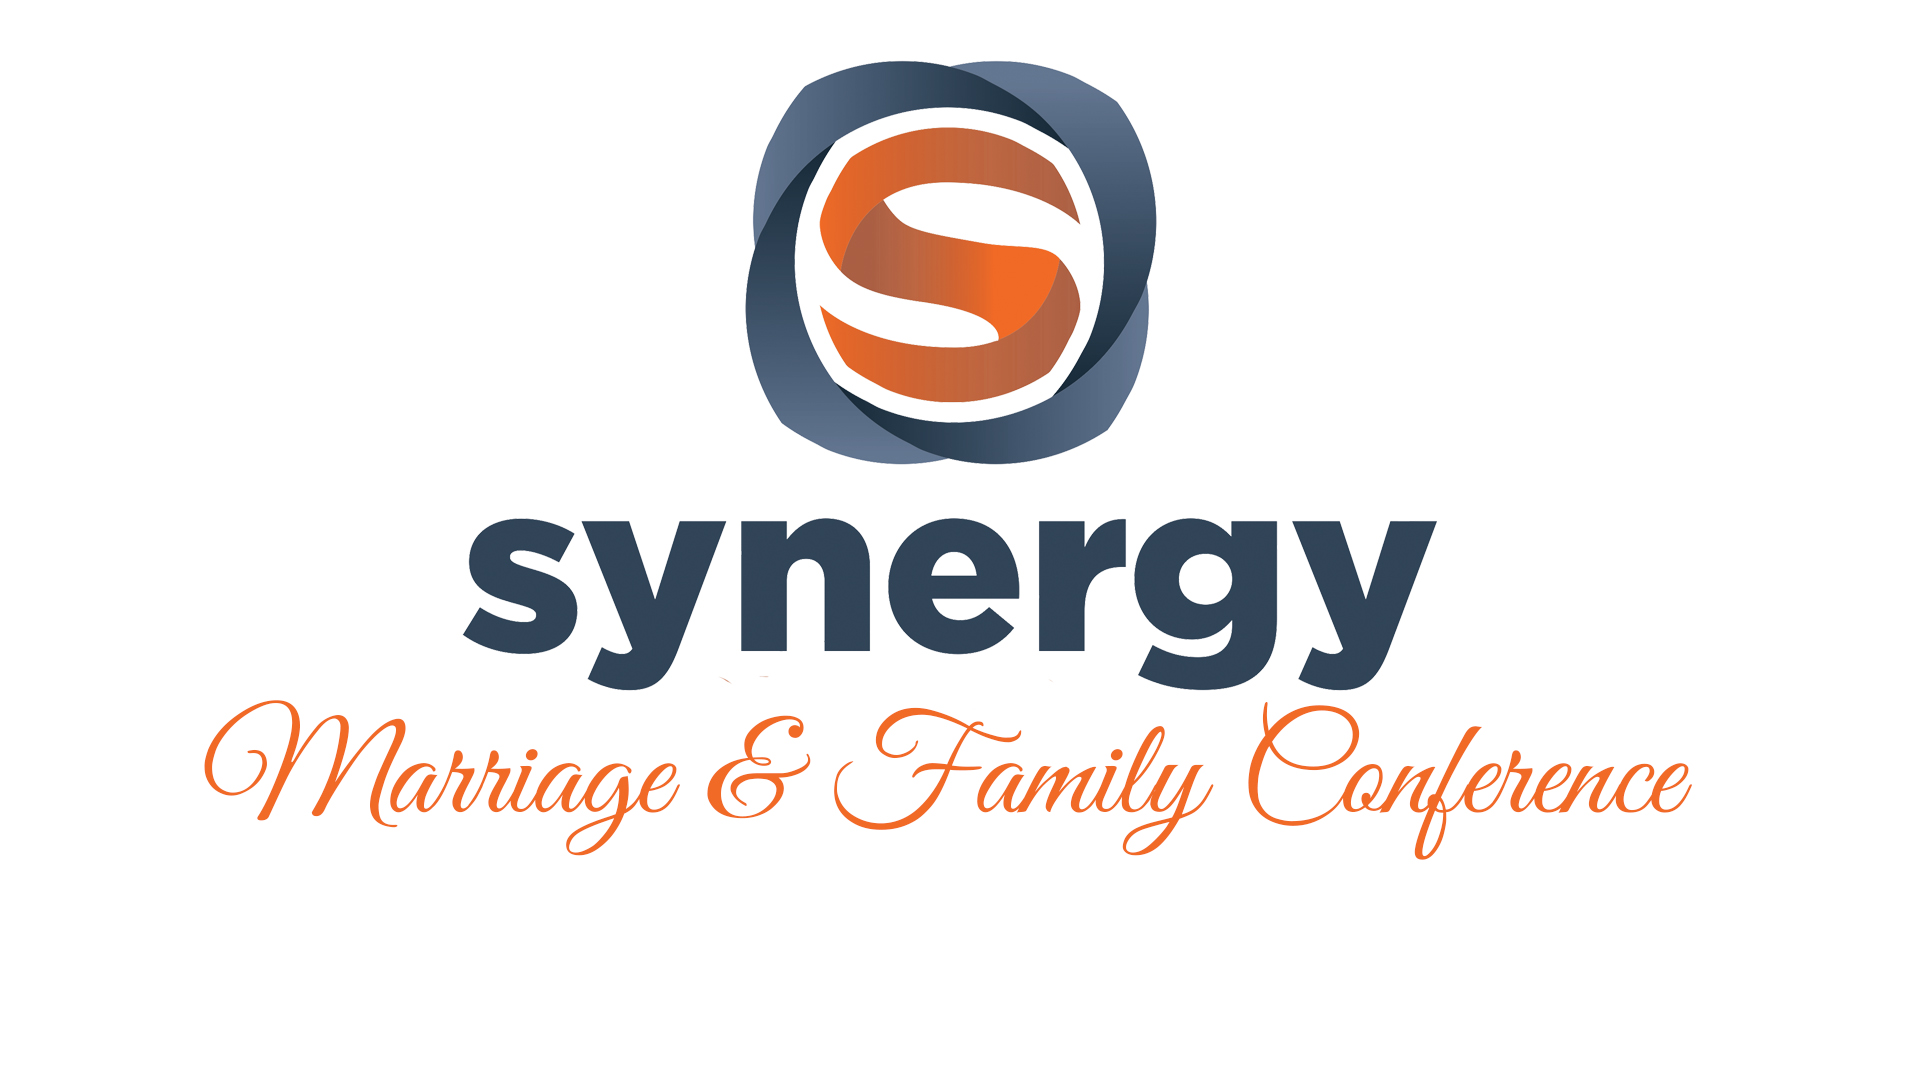 Synergy Marriage & Family Conference – Shadow Rock Church